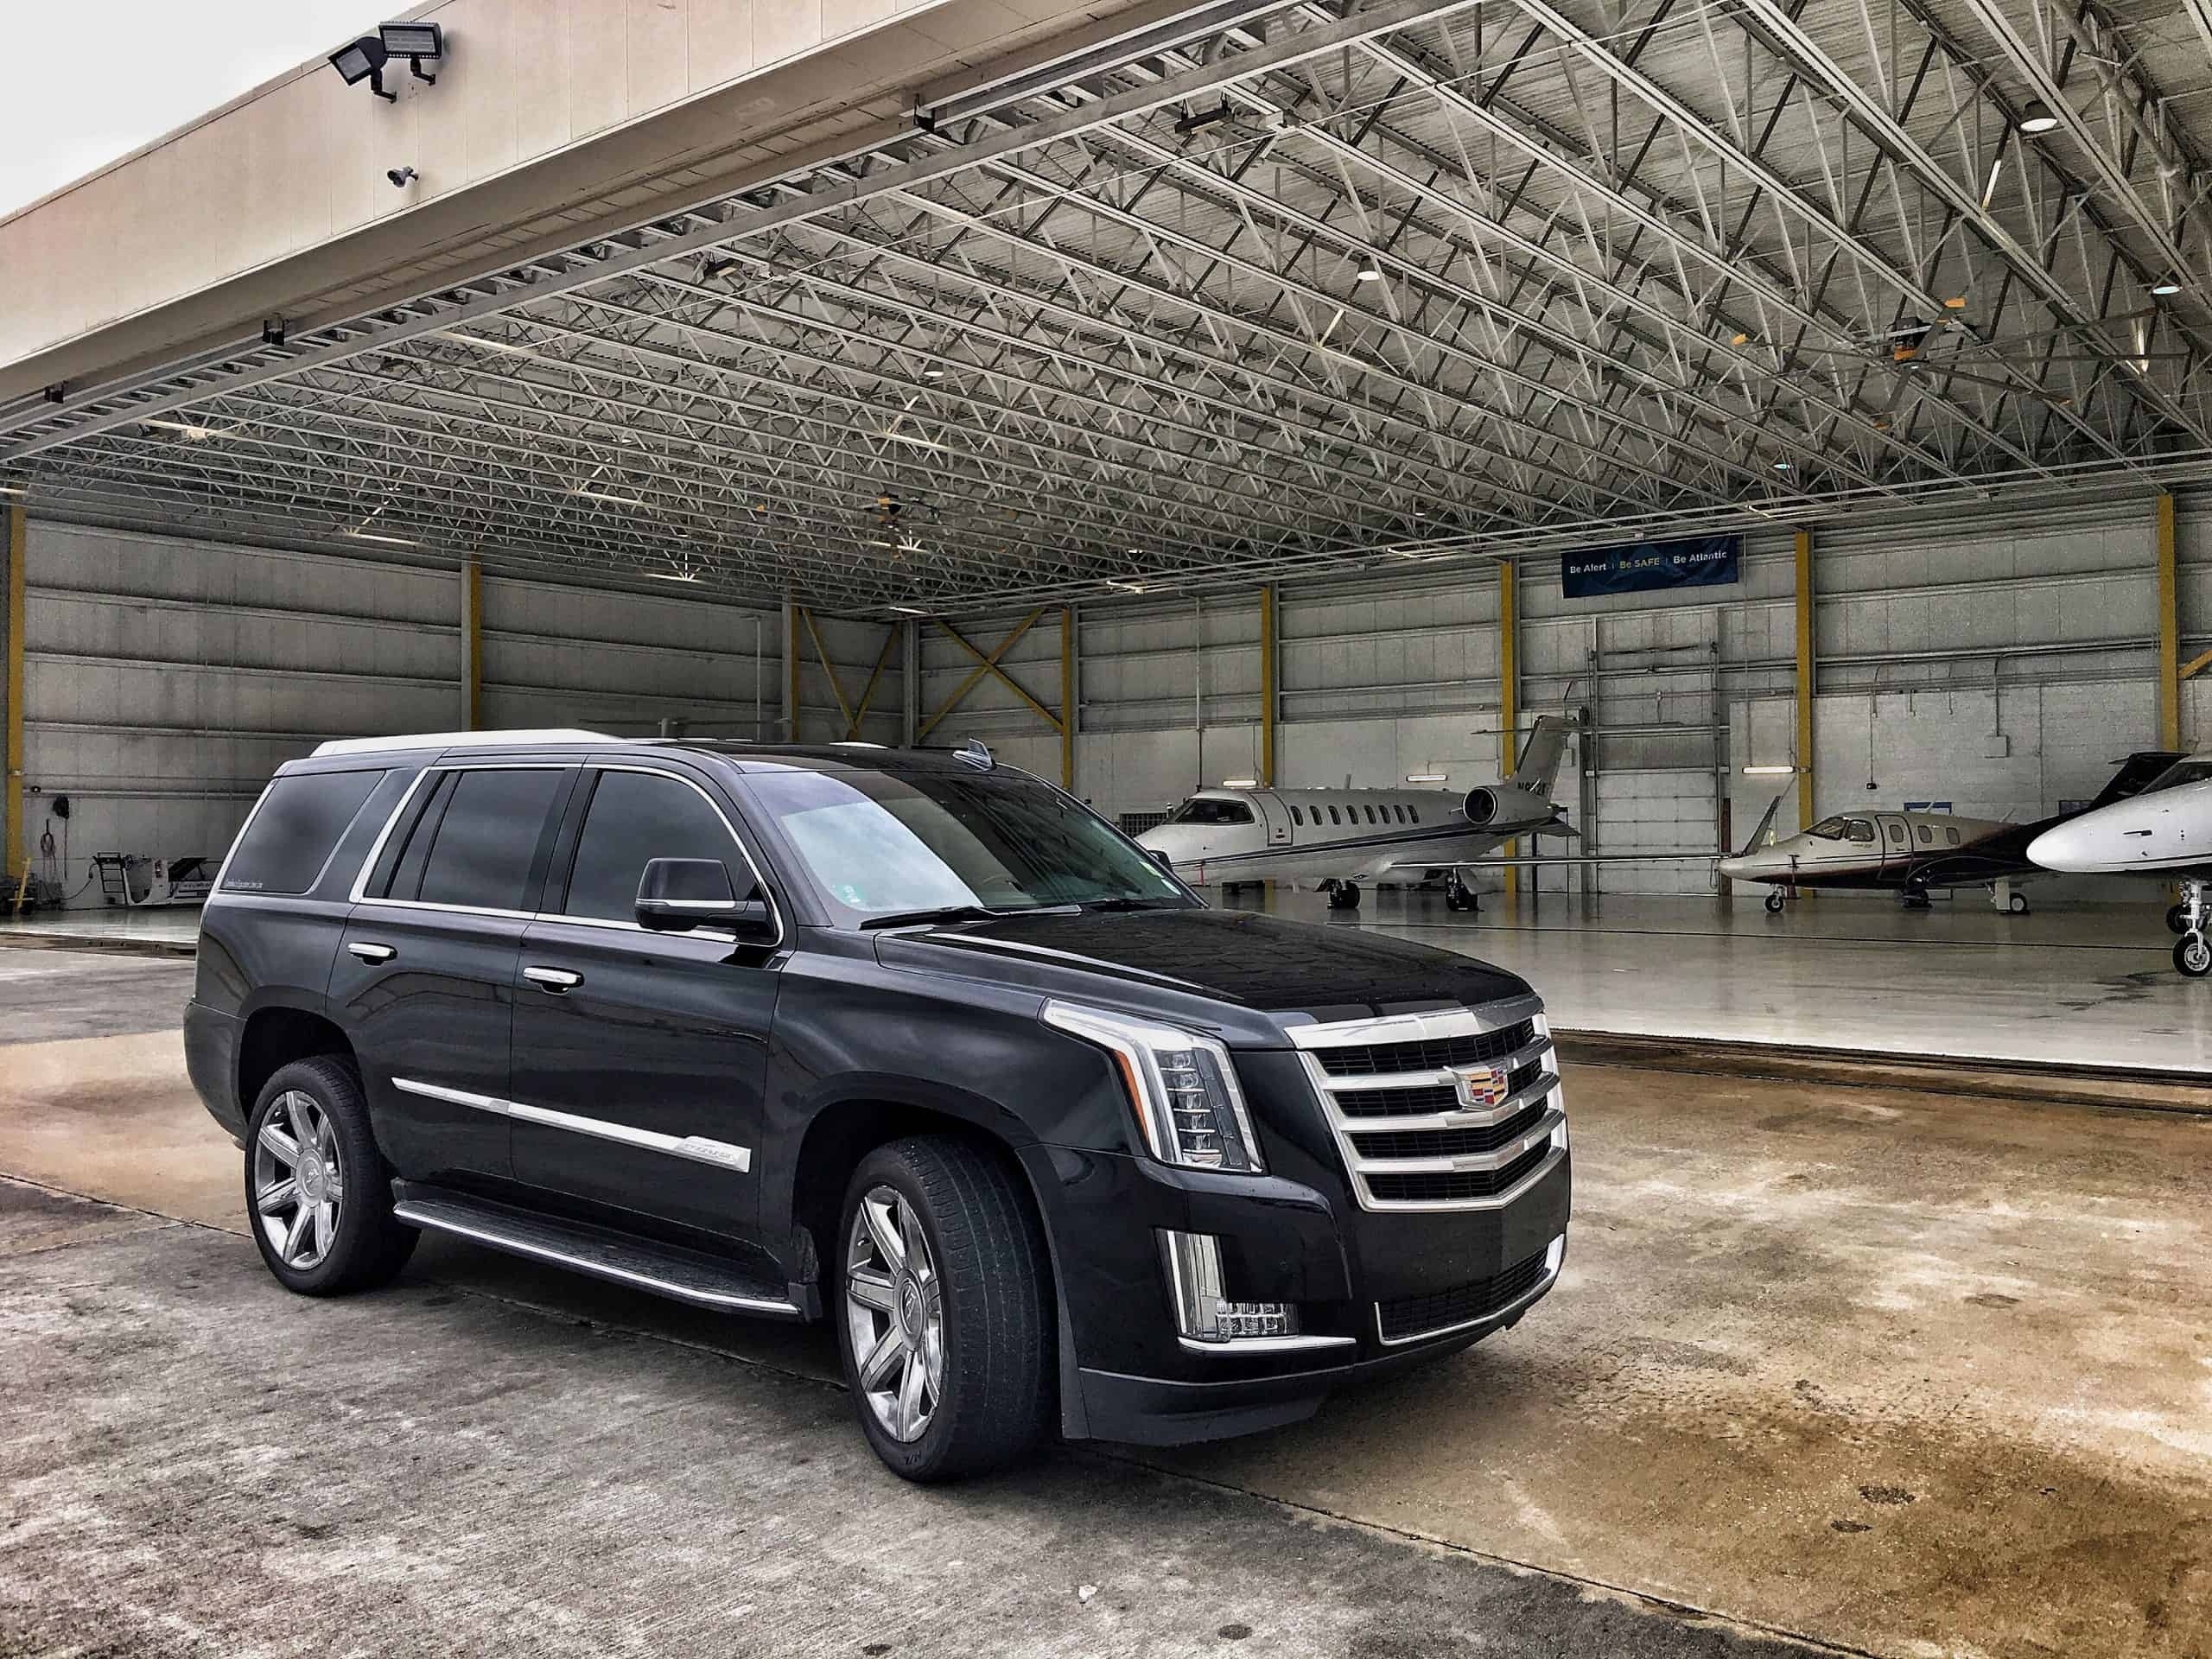 Escalade SUV at the executive airport